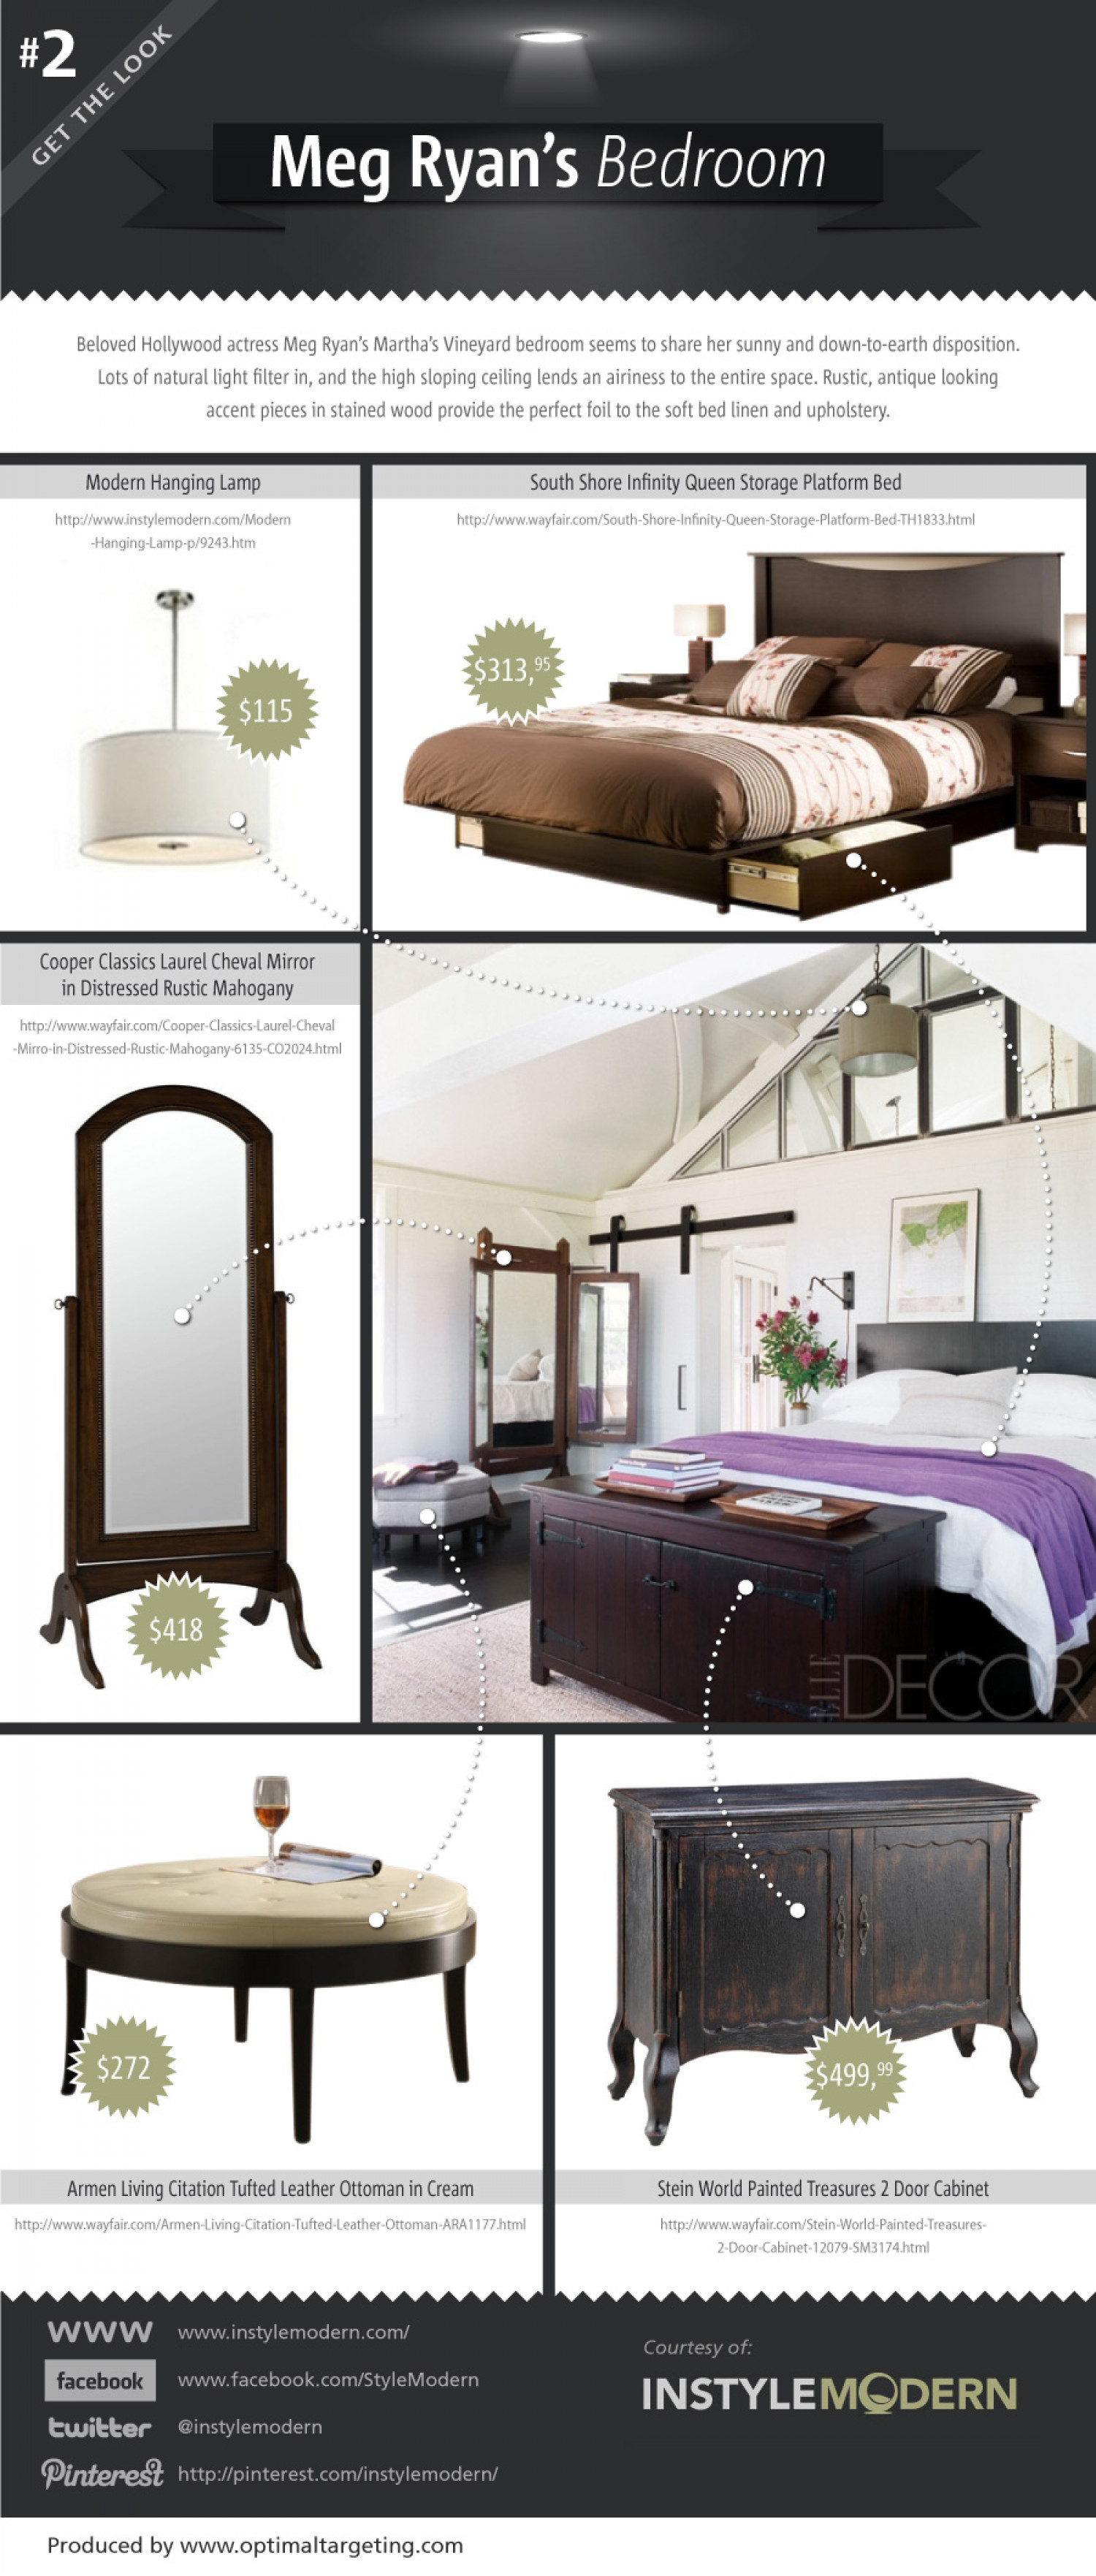 Get The Look #2: Meg Ryan's Bedroom Infographic